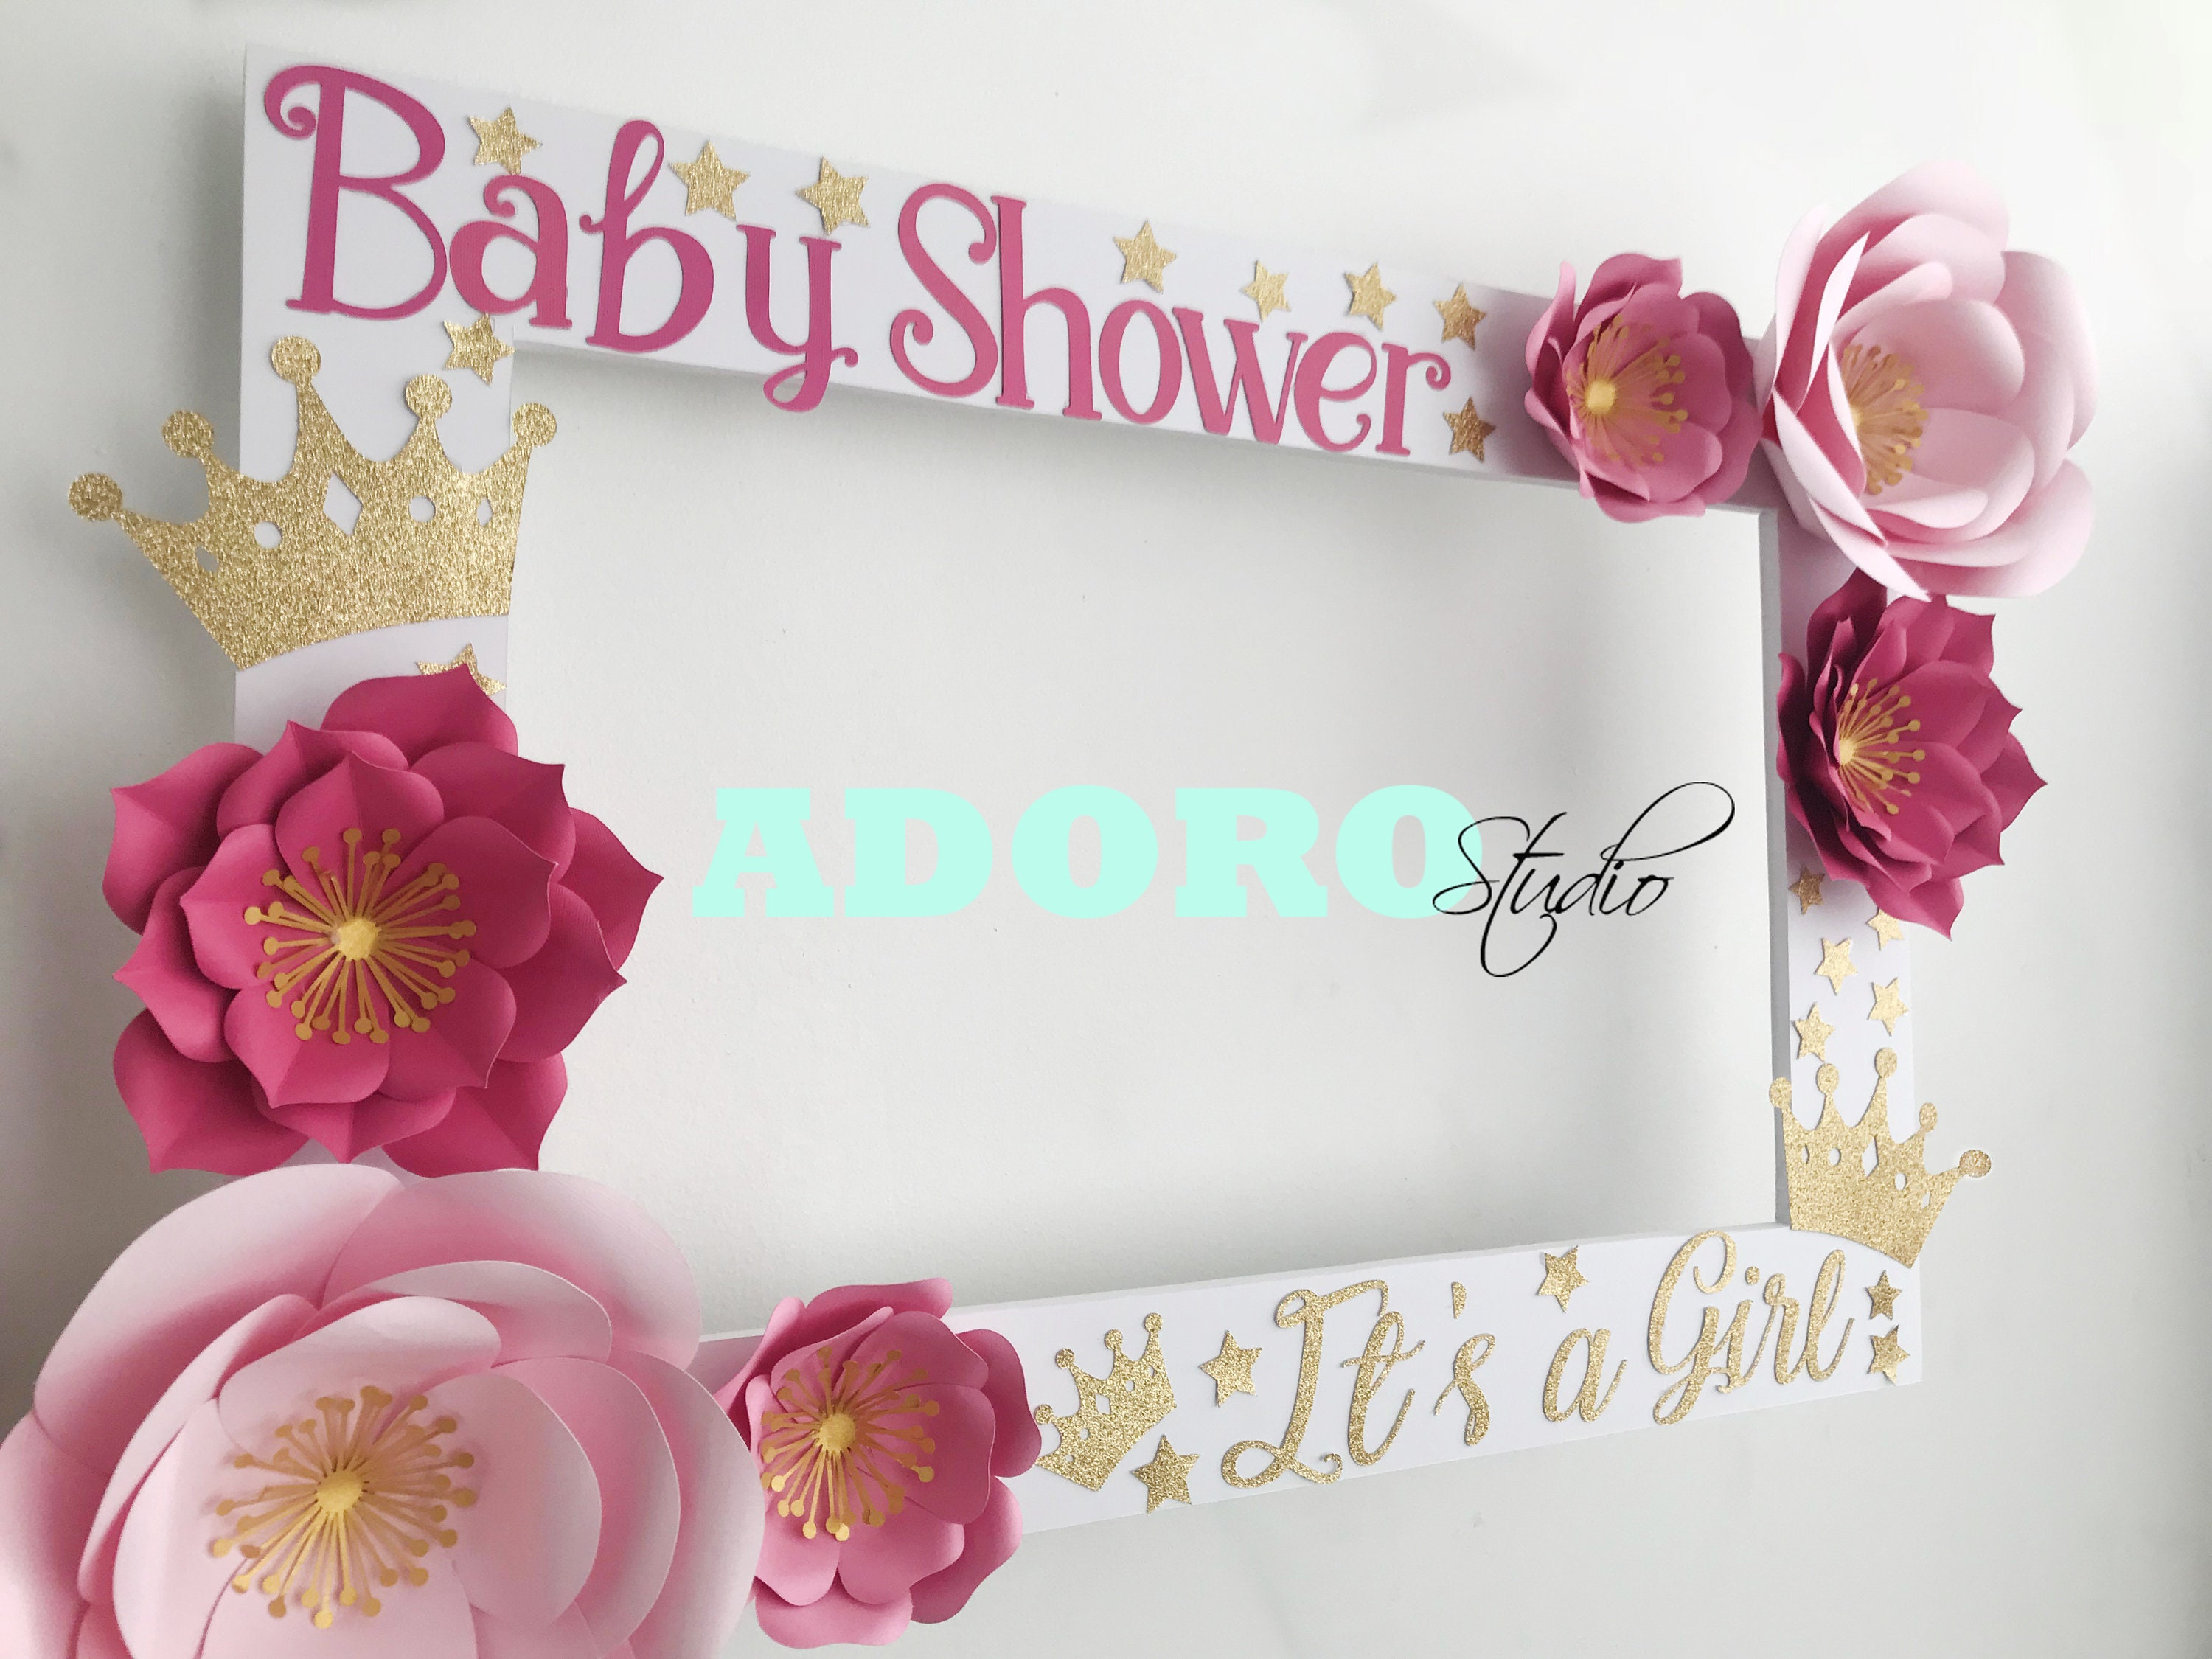 Baby Shower Photo Booth Frame Birthday Party Selfie